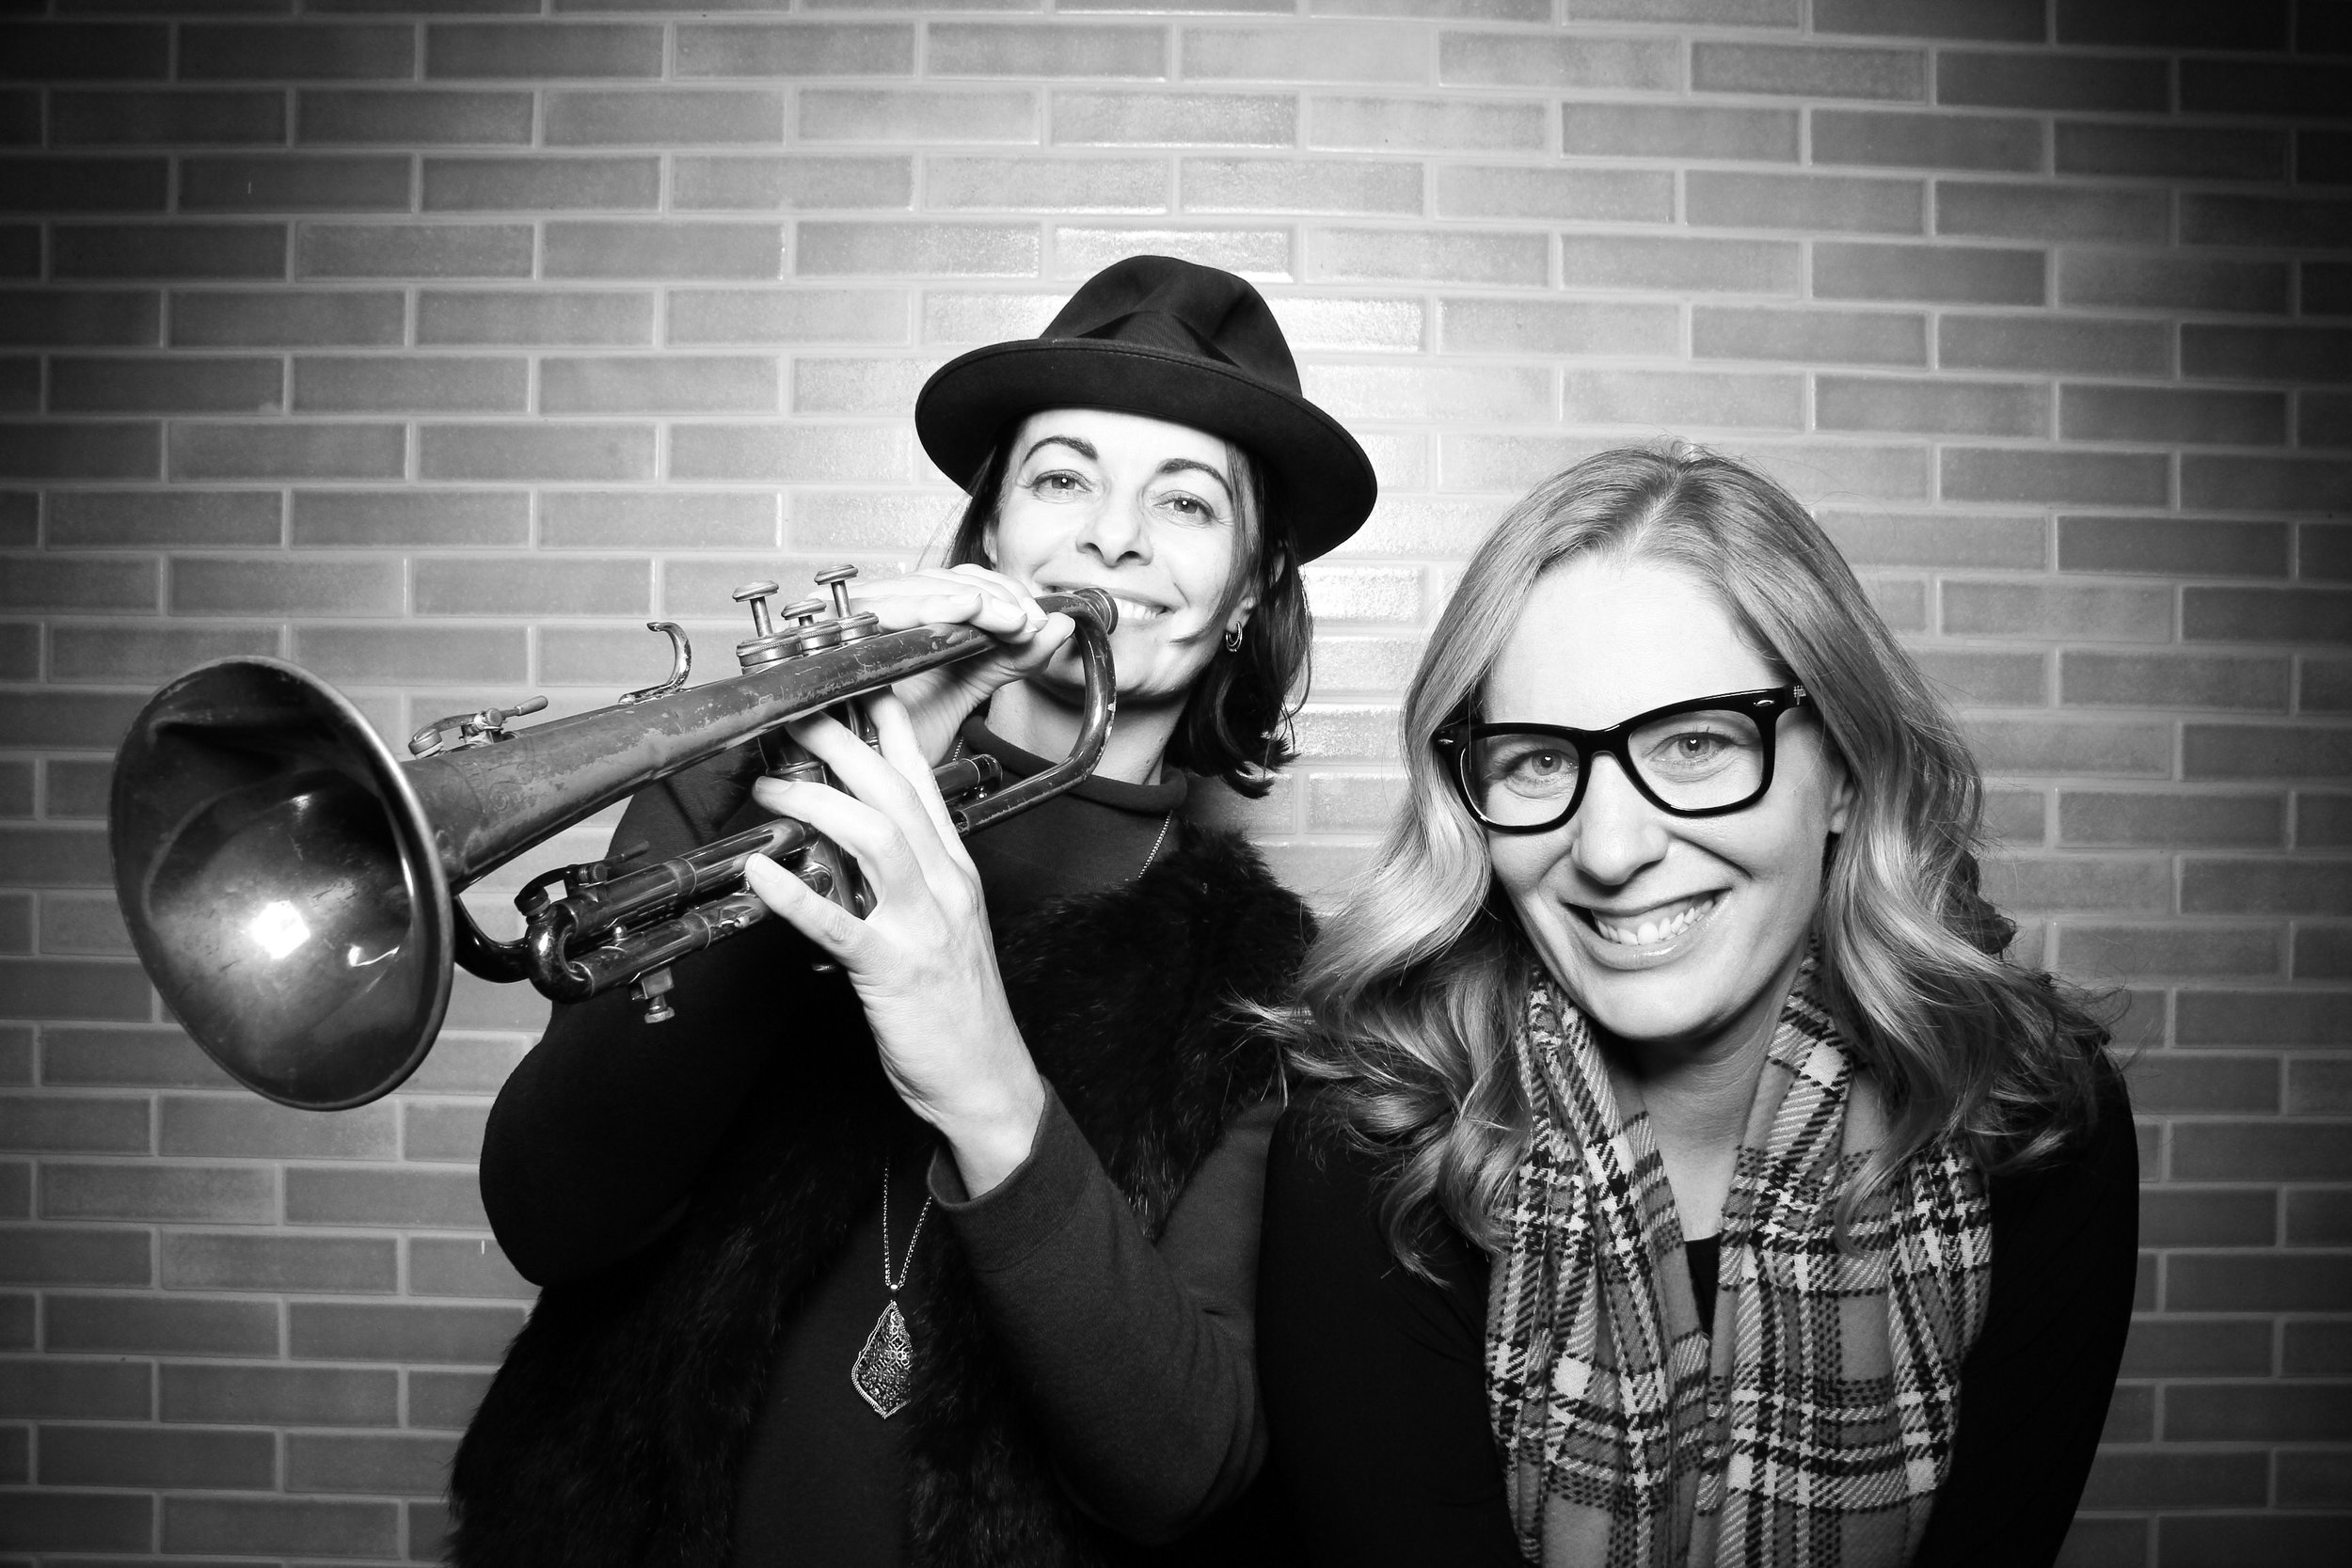 Chicago_Vintage_Photobooth_Holiday_Party_Boleo_10.jpg